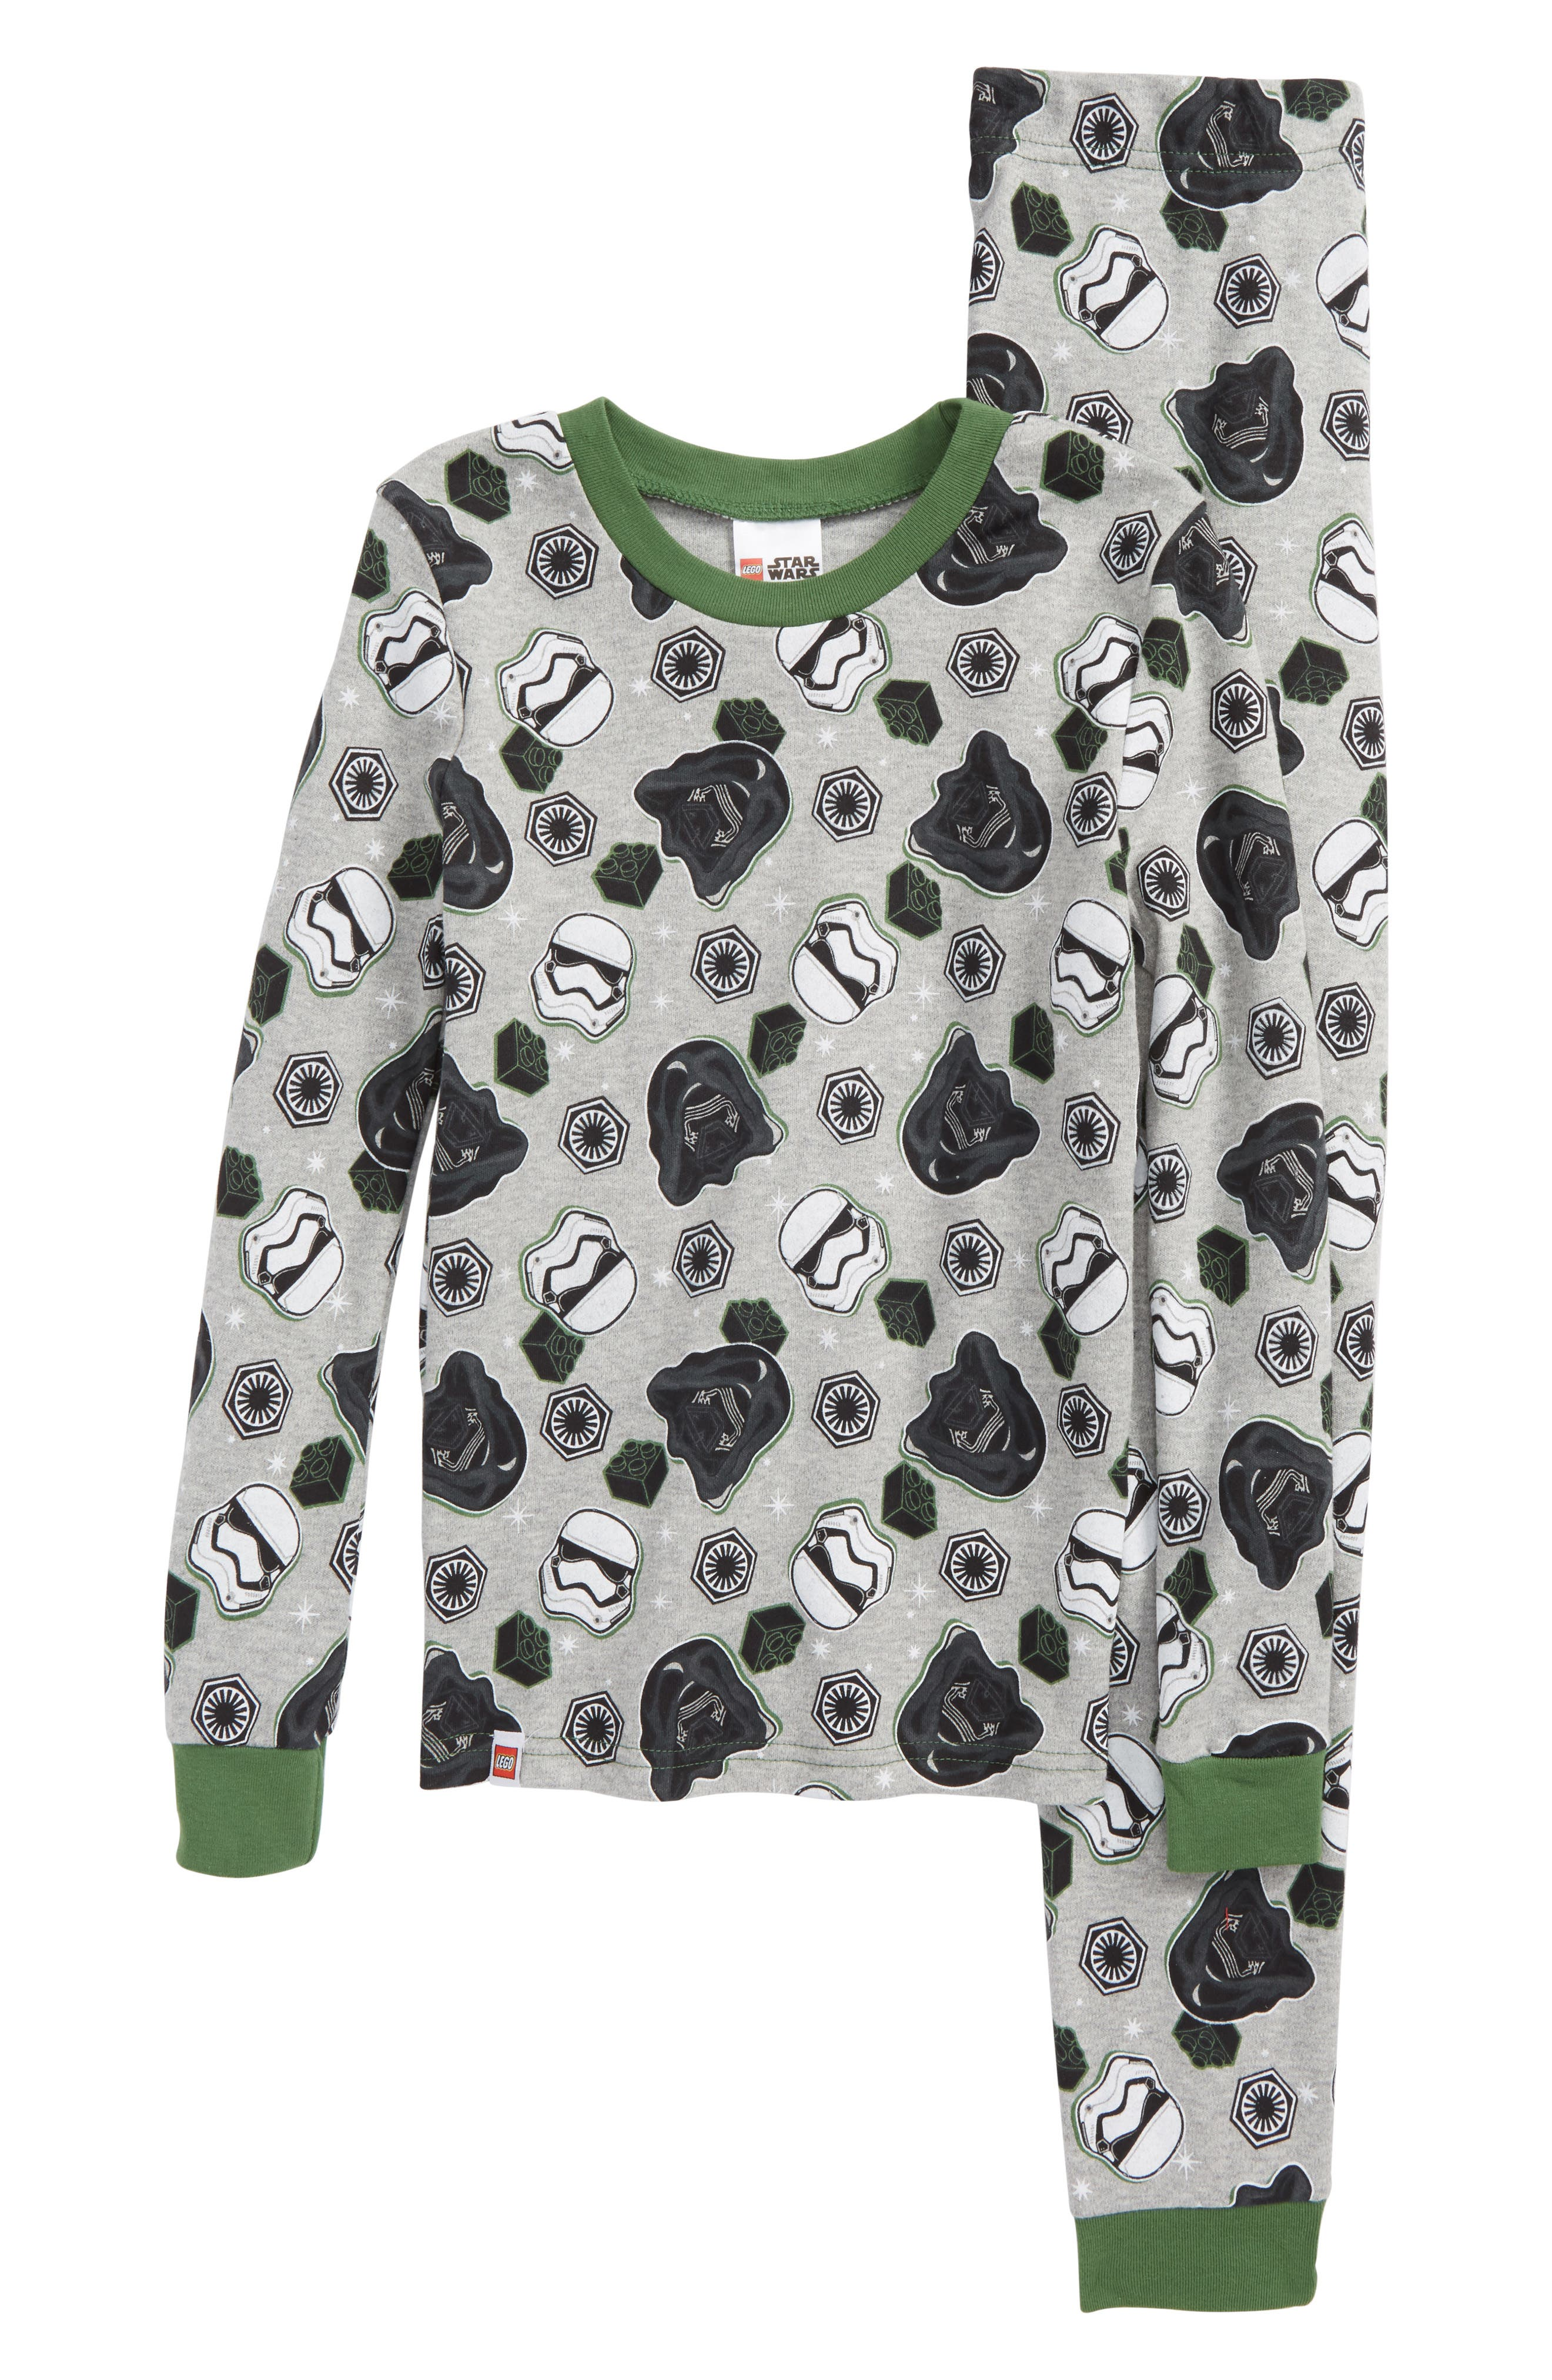 Lego Star Wars<sup>™</sup> Fitted Two-Piece Pajamas Set,                         Main,                         color, 061